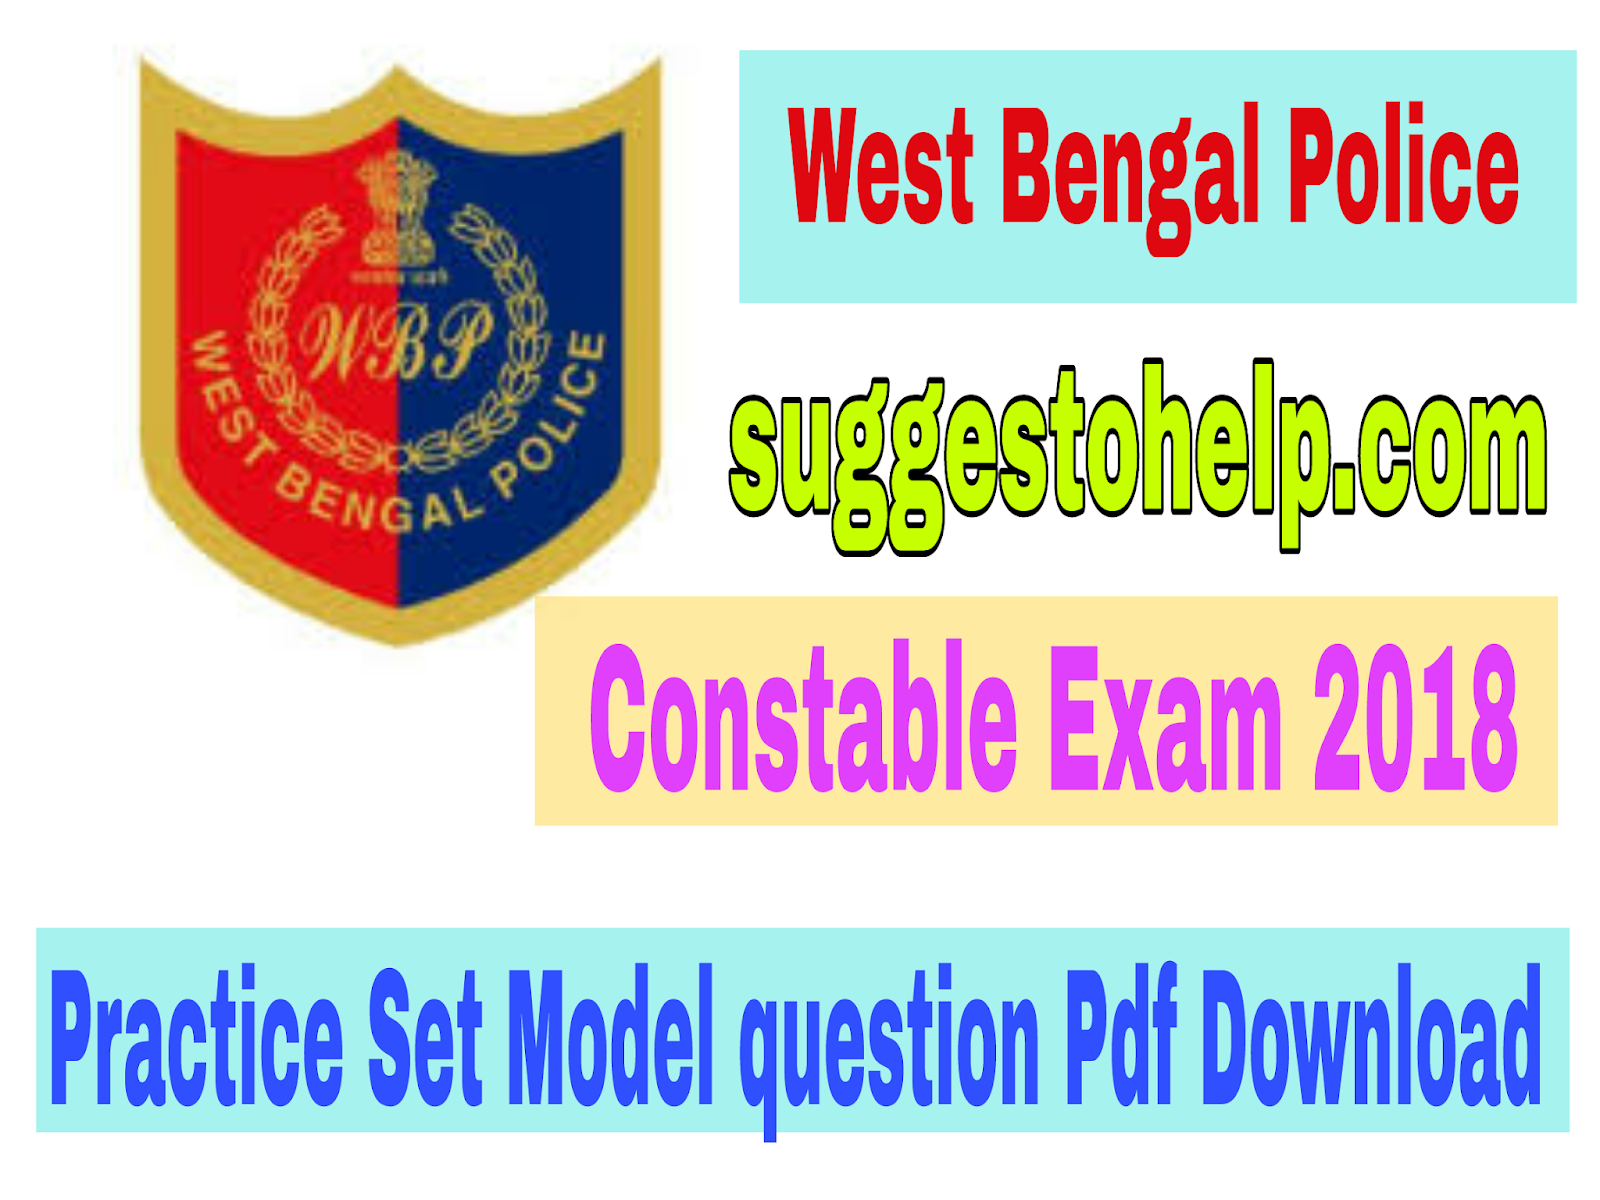 West Bengal Police Constable 2018 Exam Question Paper